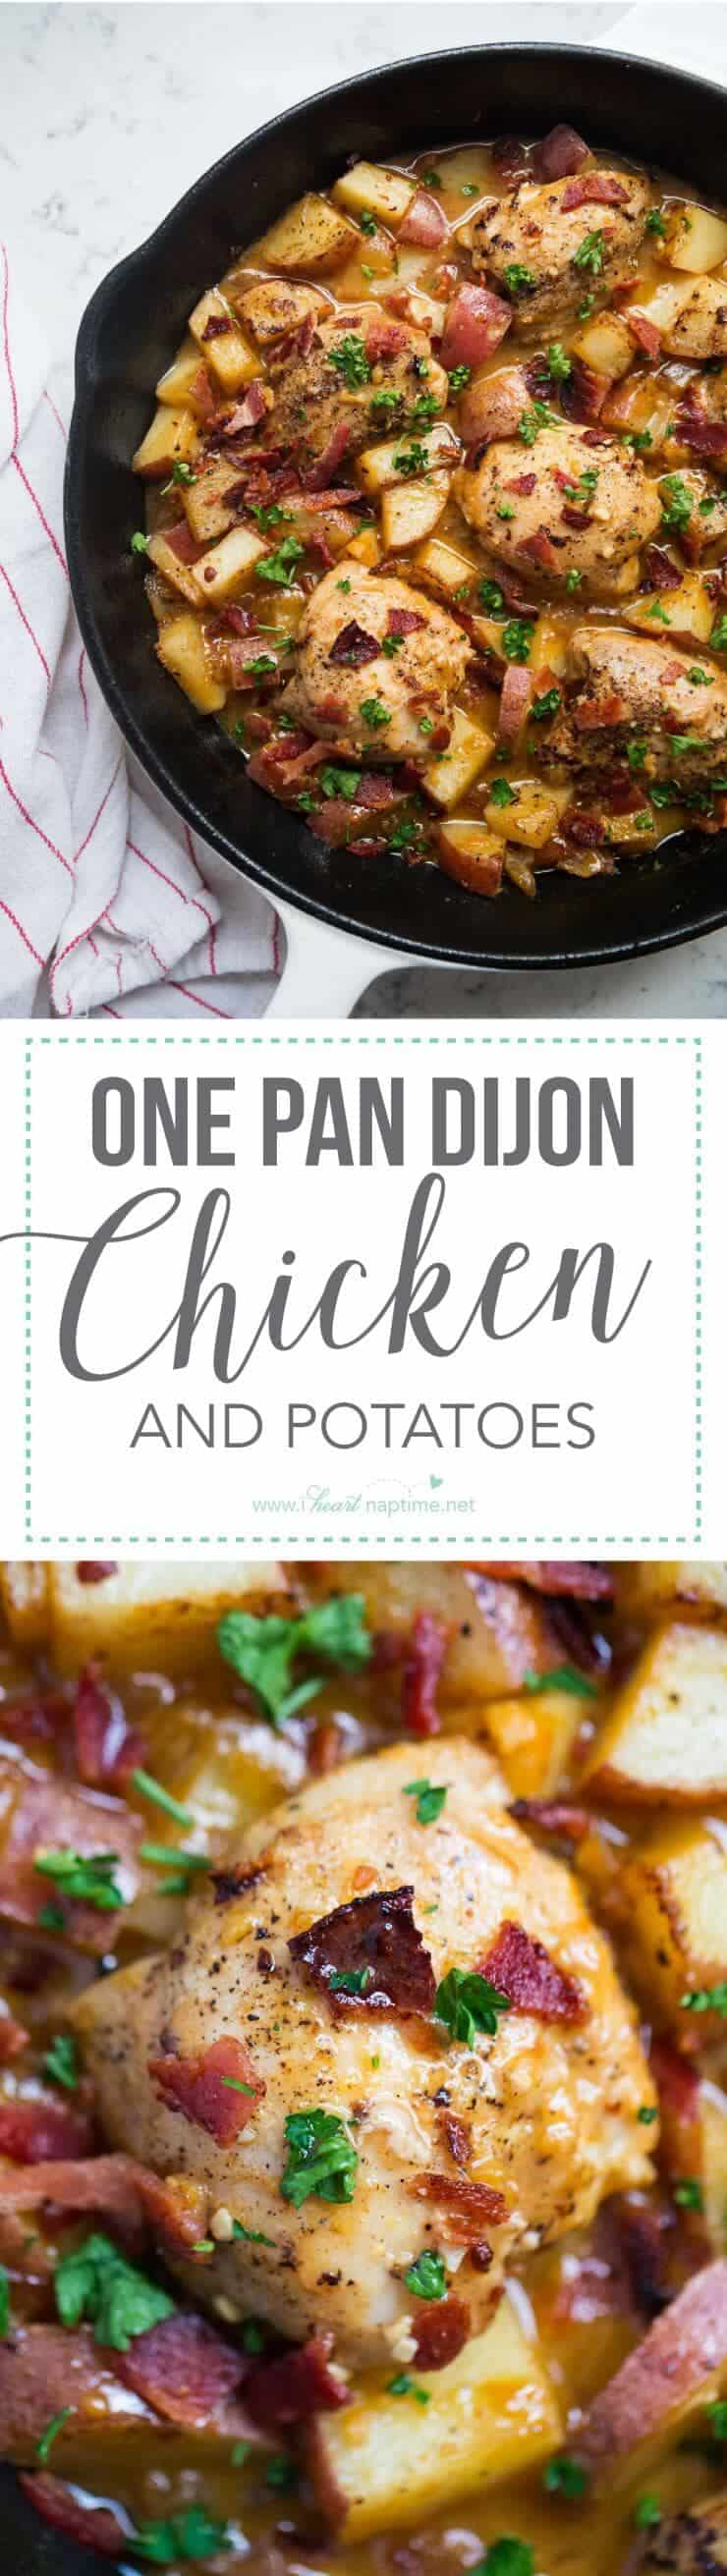 One Pan Dijon Chicken and Potatoes Recipe ...the caramelized onions, roasted potatoes, juicy chicken, and dijon glaze give this dish so much flavor!